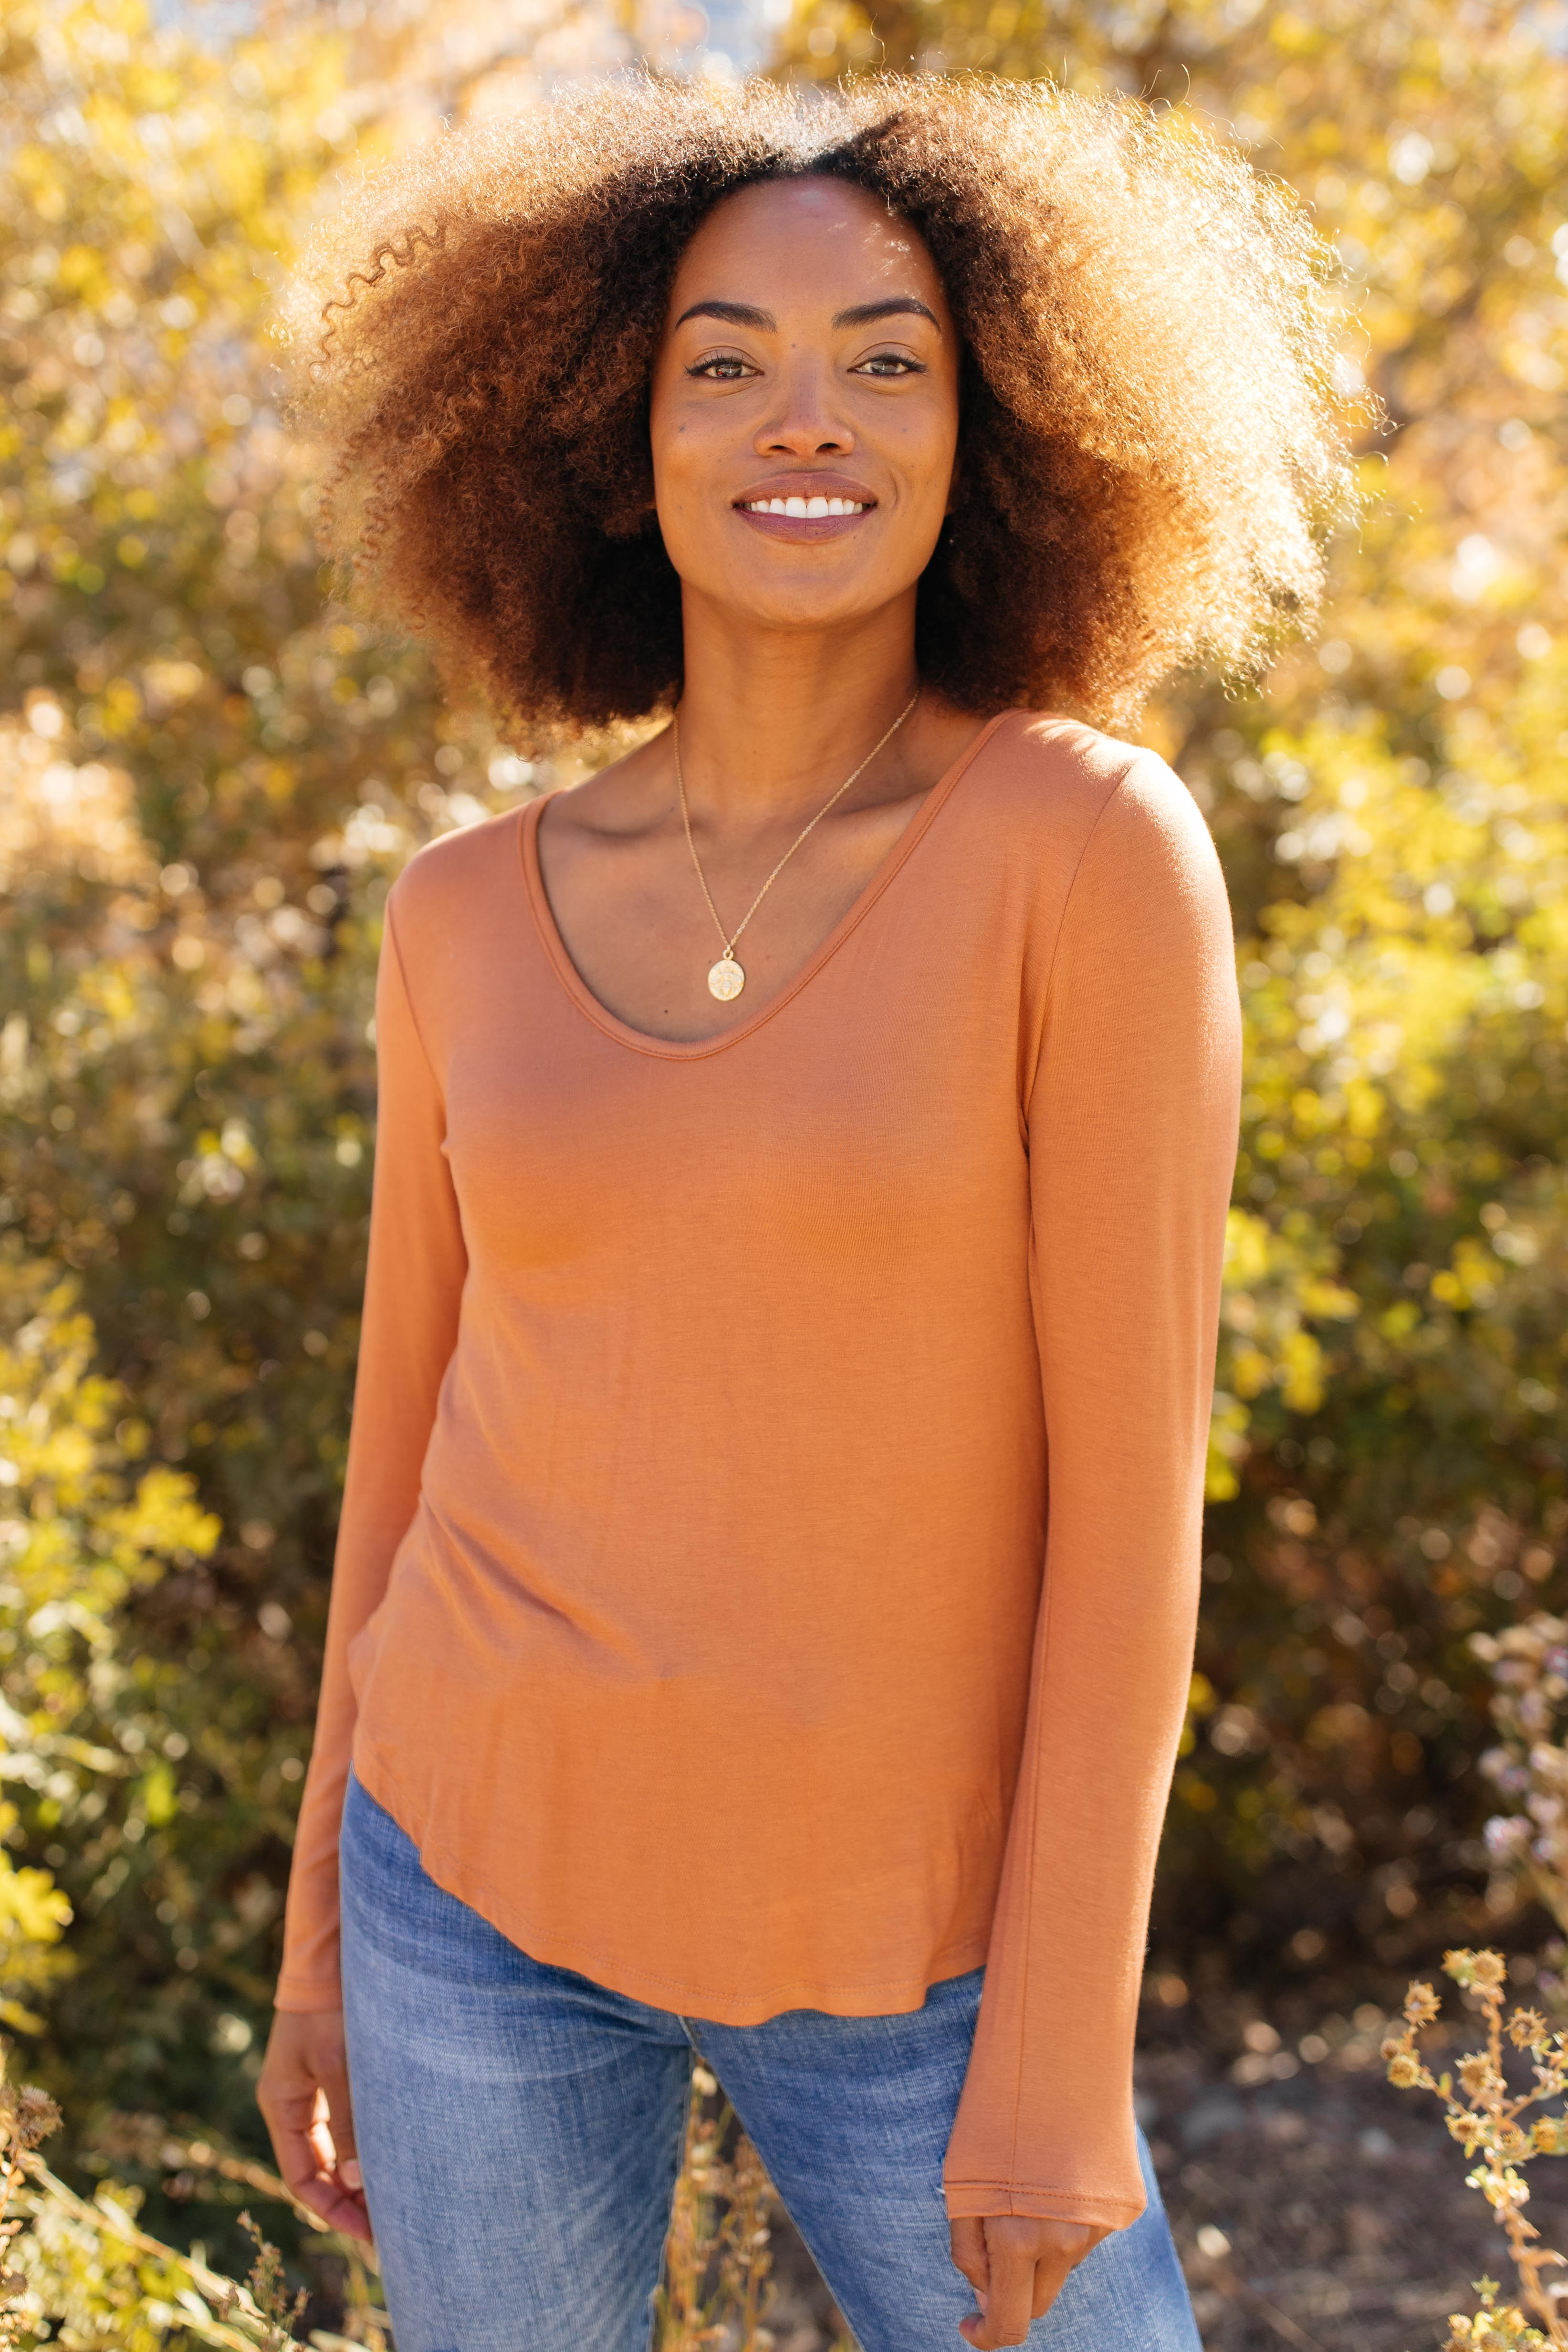 Ave Shops Tops The Wendi Top in Harvest Orange